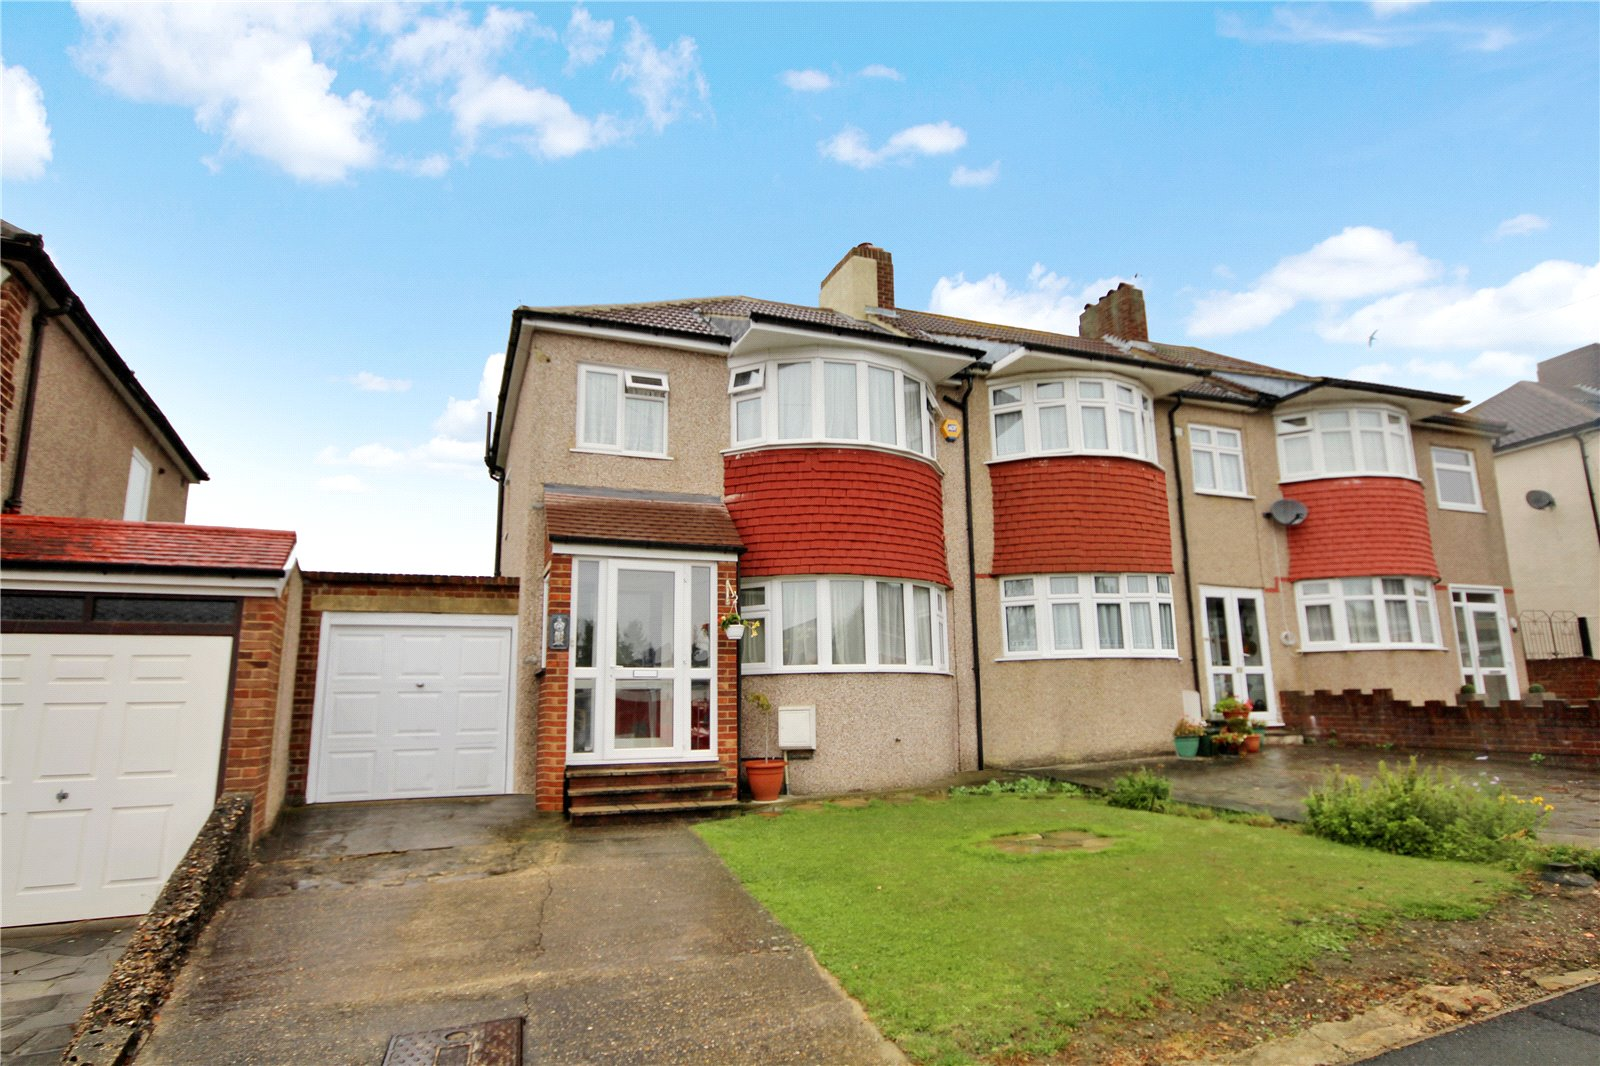 Kent Avenue, South Welling, Kent, DA16